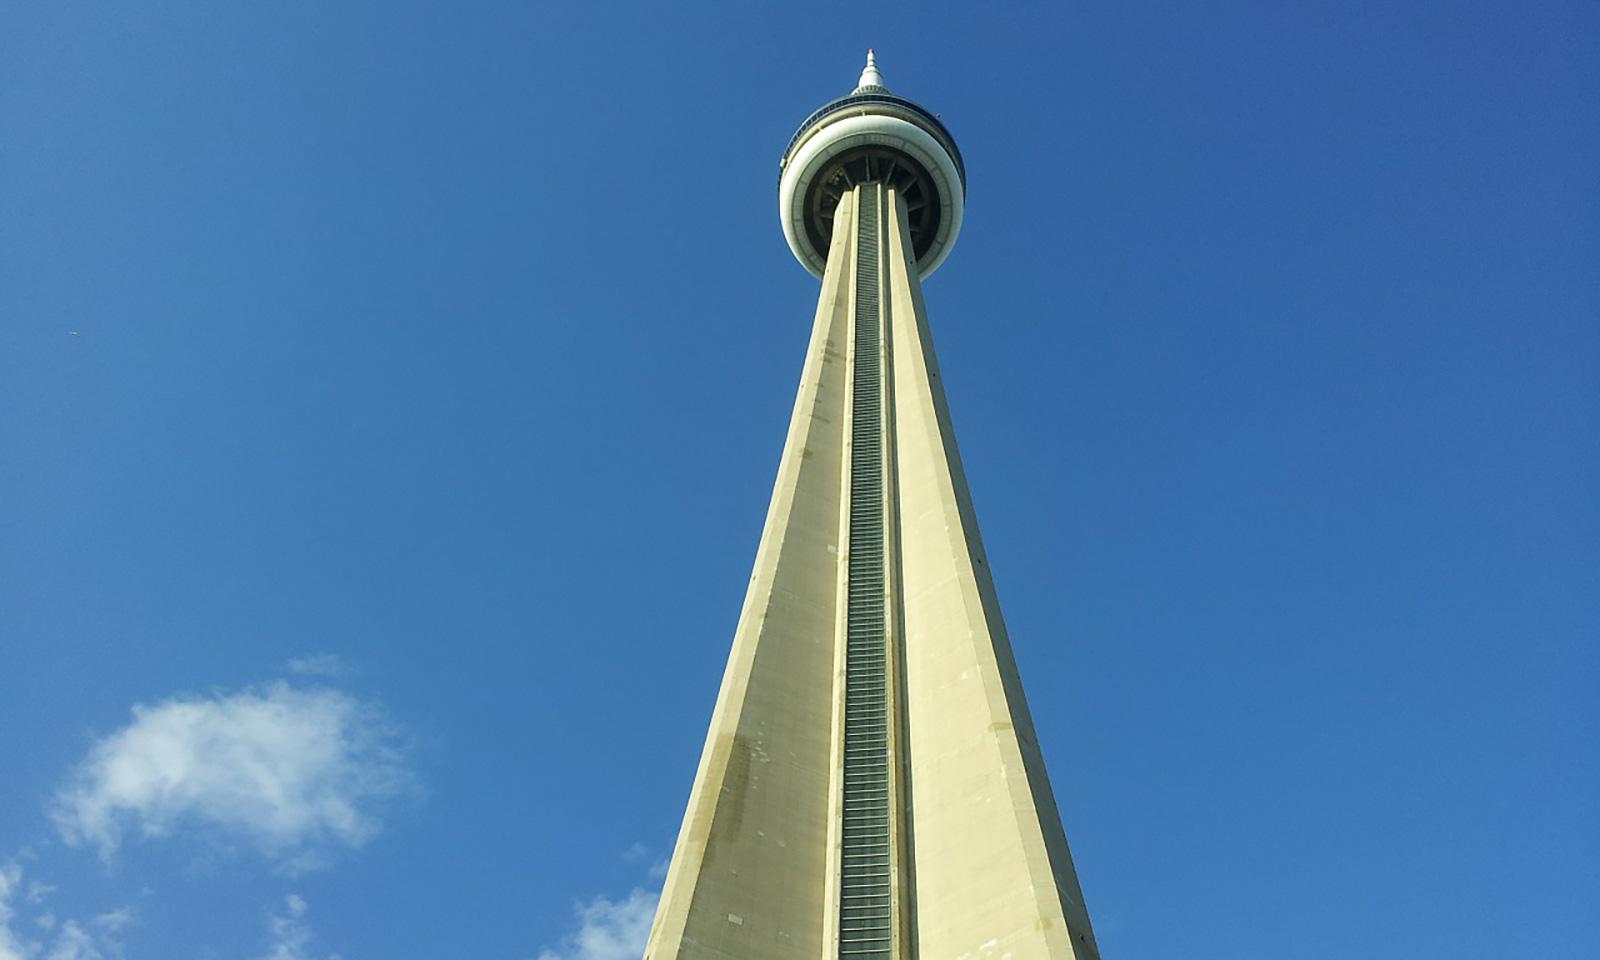 cn-tower_no-credit-needed